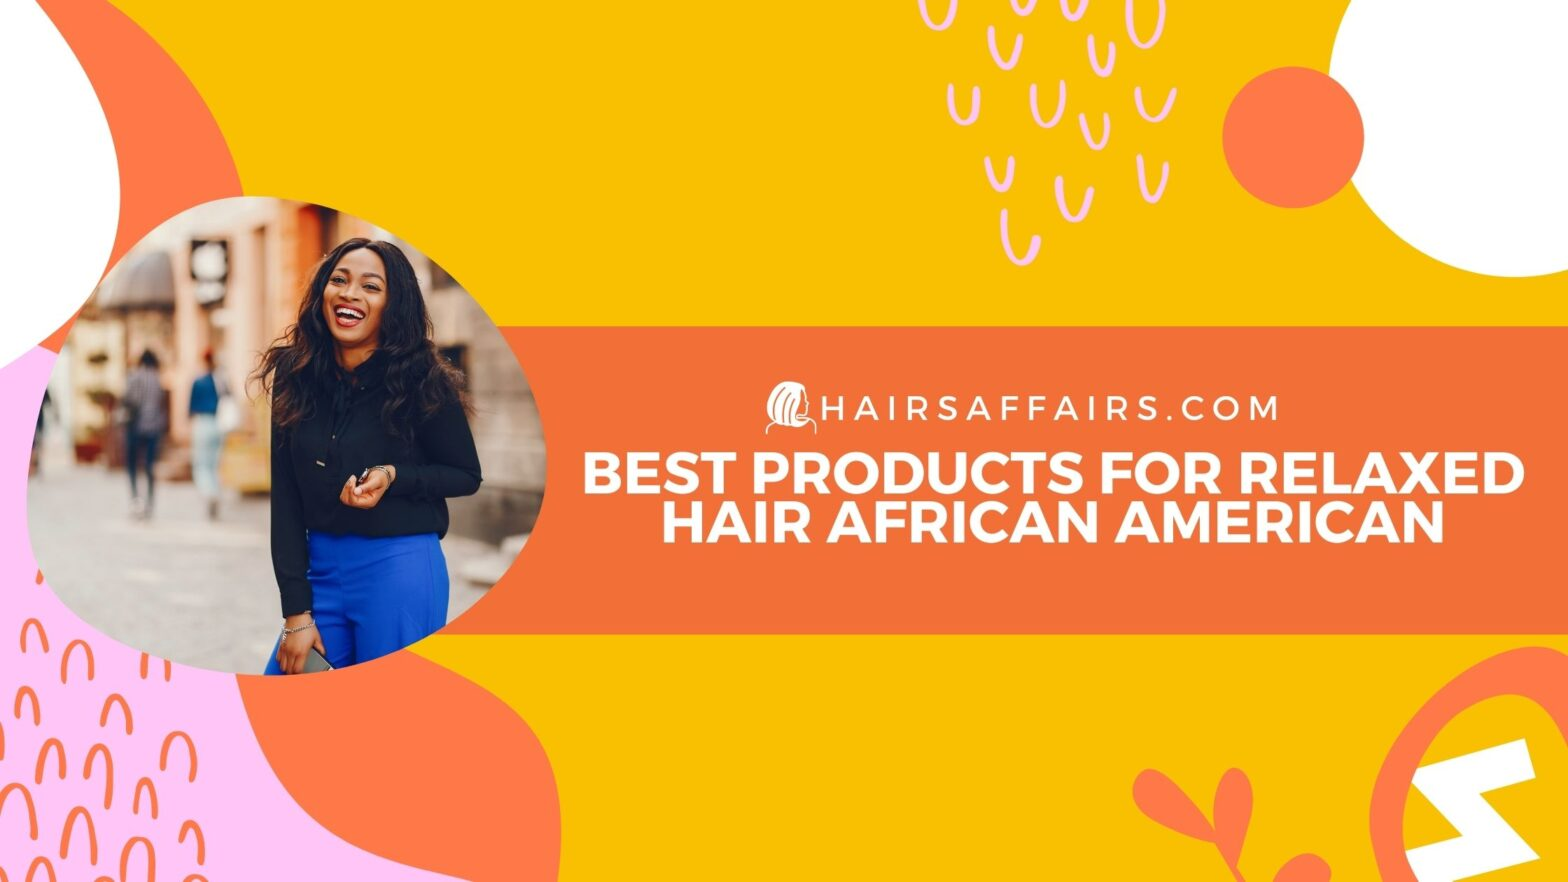 HA-best-products-for-relaxed-hair-african-american